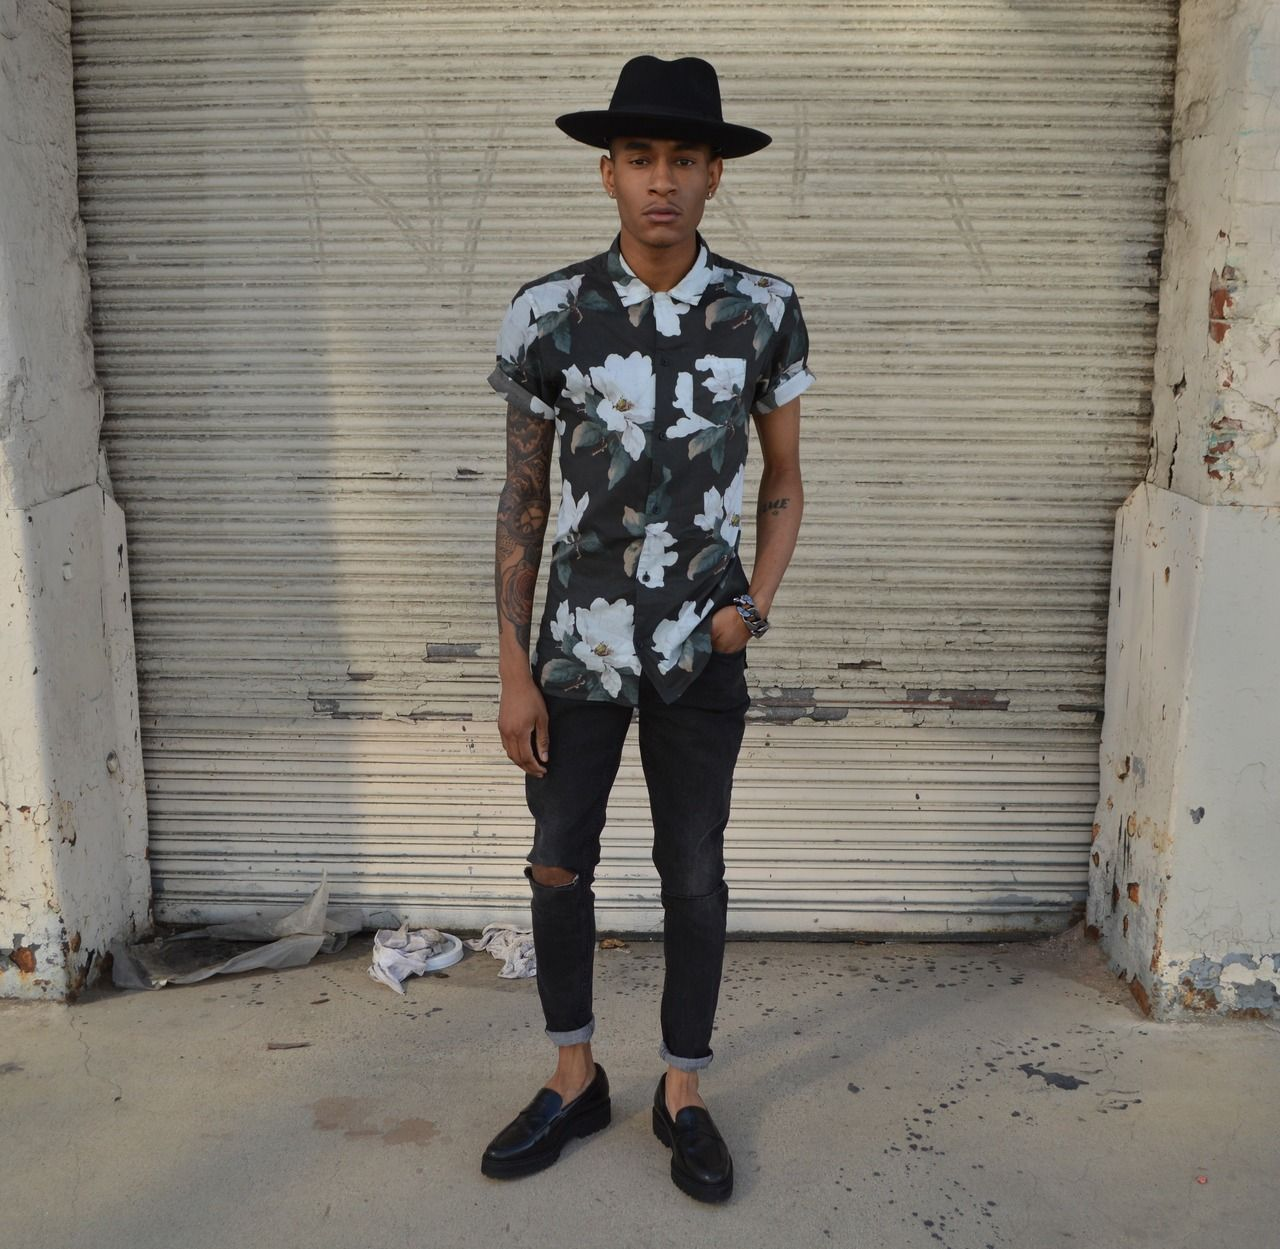 Shop this look on Lookastic:  http://lookastic.com/men/looks/black-and-white-shortsleeve-shirt-and-black-hat-and-black-skinny-jeans-and-black-loafers/2087  — Black and White Floral Short Sleeve Shirt  — Black Hat  — Black Skinny Jeans  — Black Leather Loafers